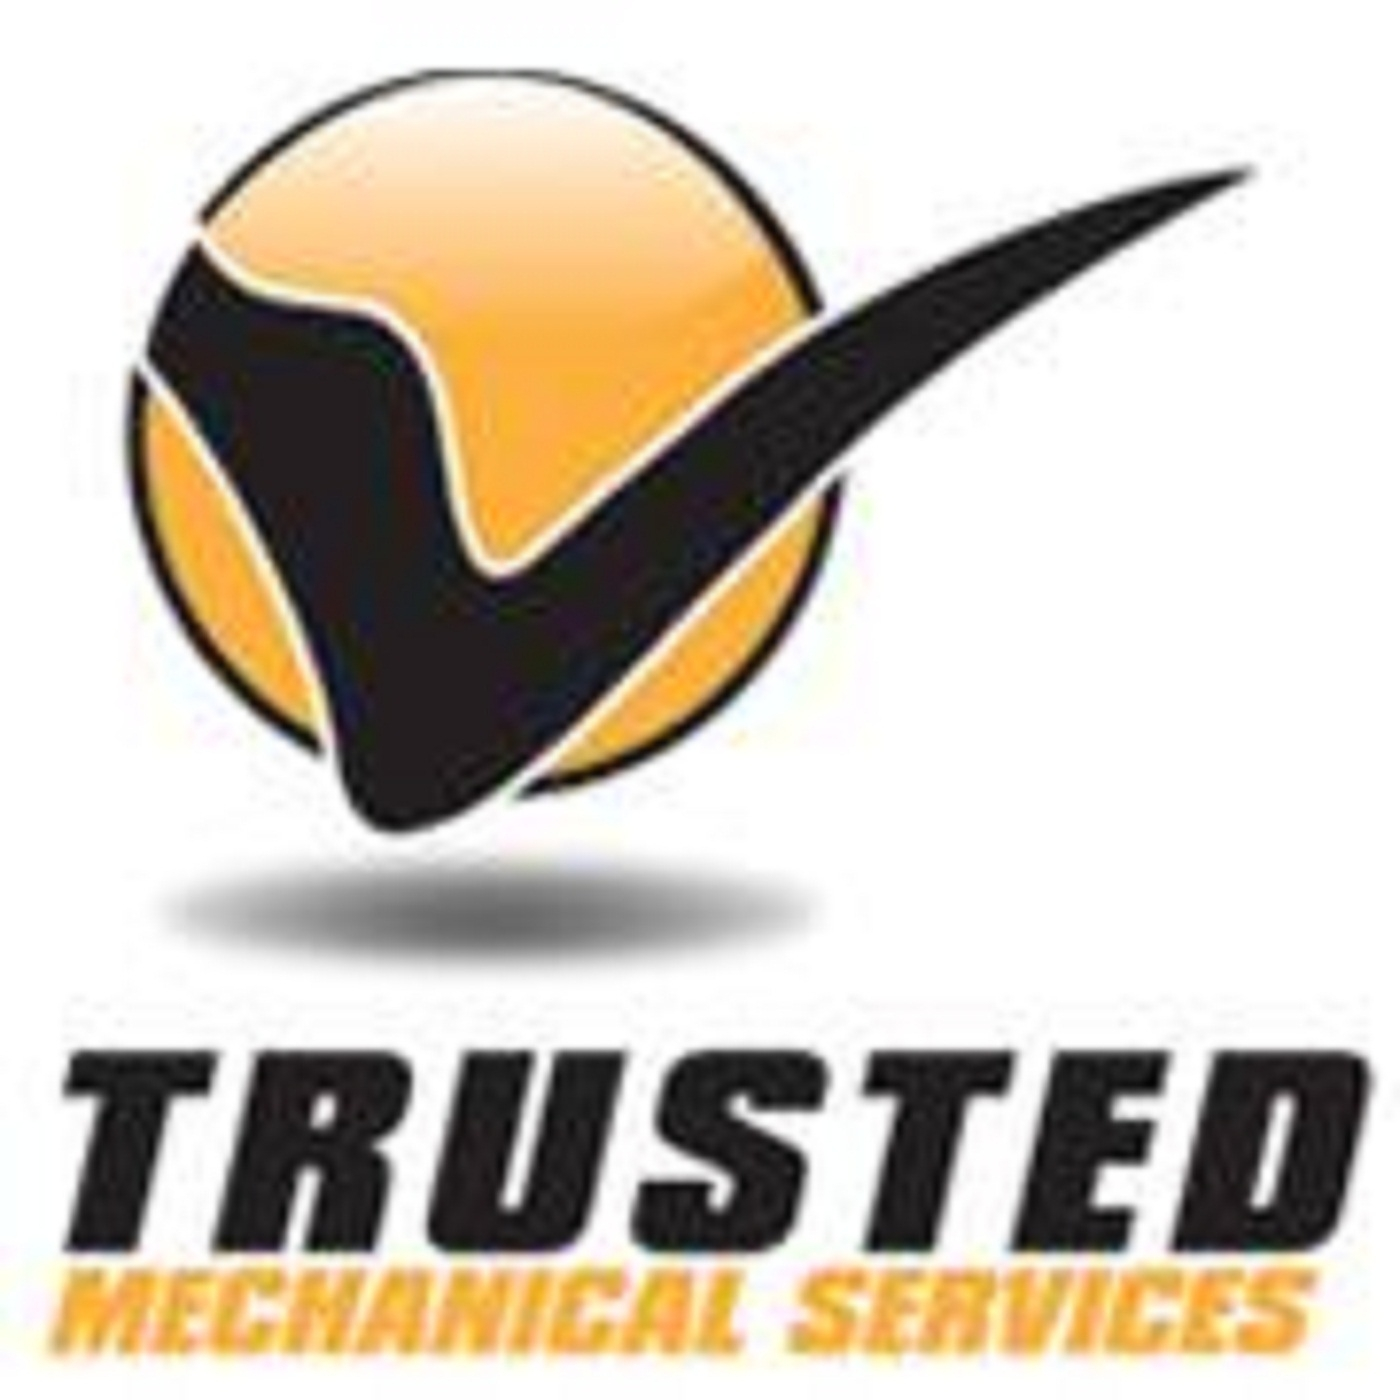 Trusted Mechanical Services (@trustedmechanicalservices) Cover Image